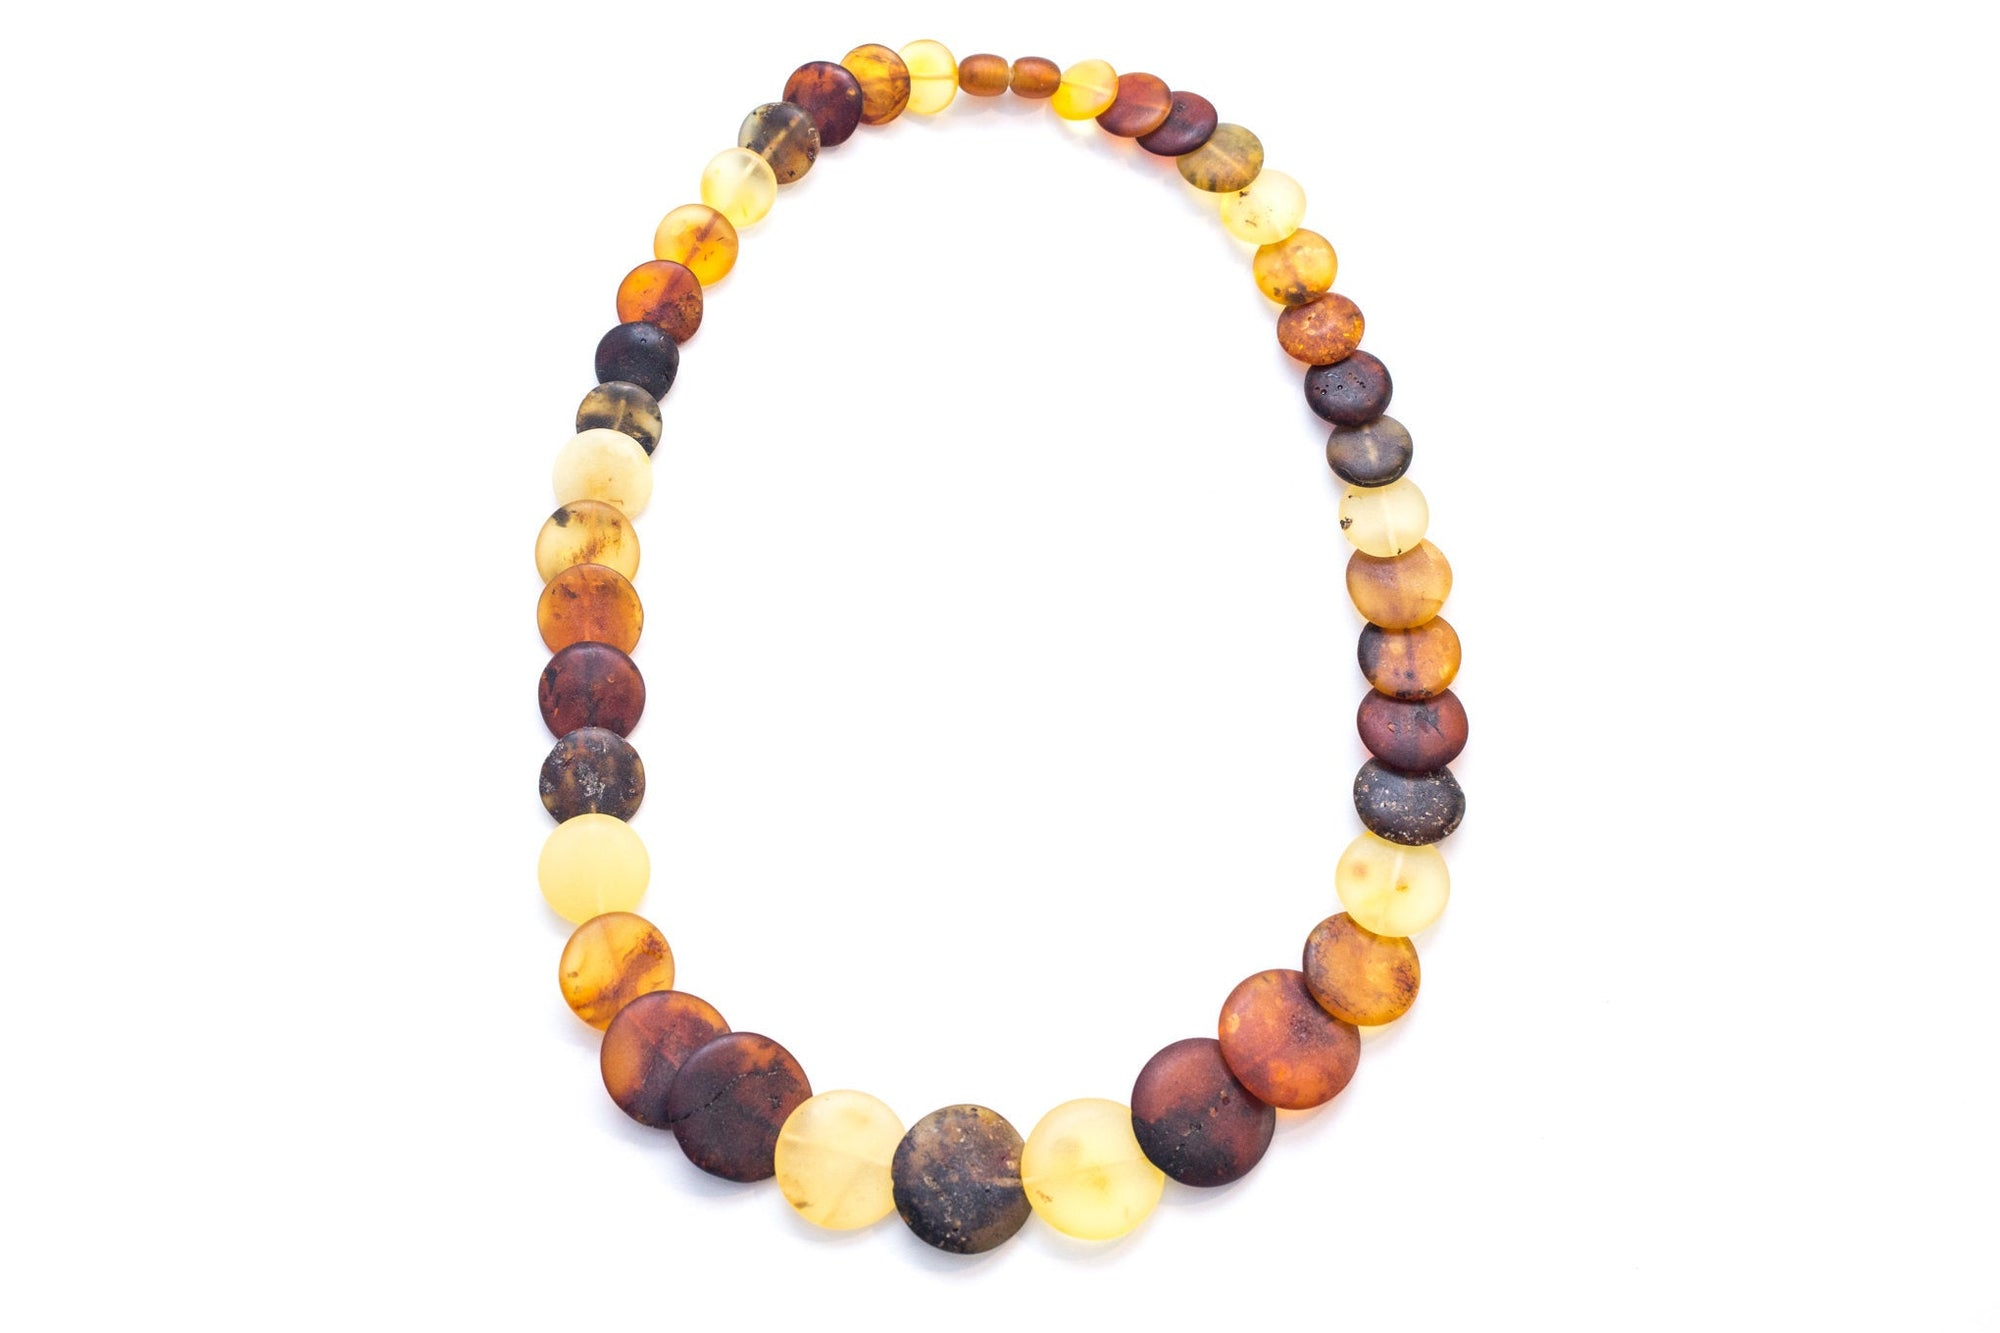 Colourful Amber Necklace - Round Amber Bead Necklace